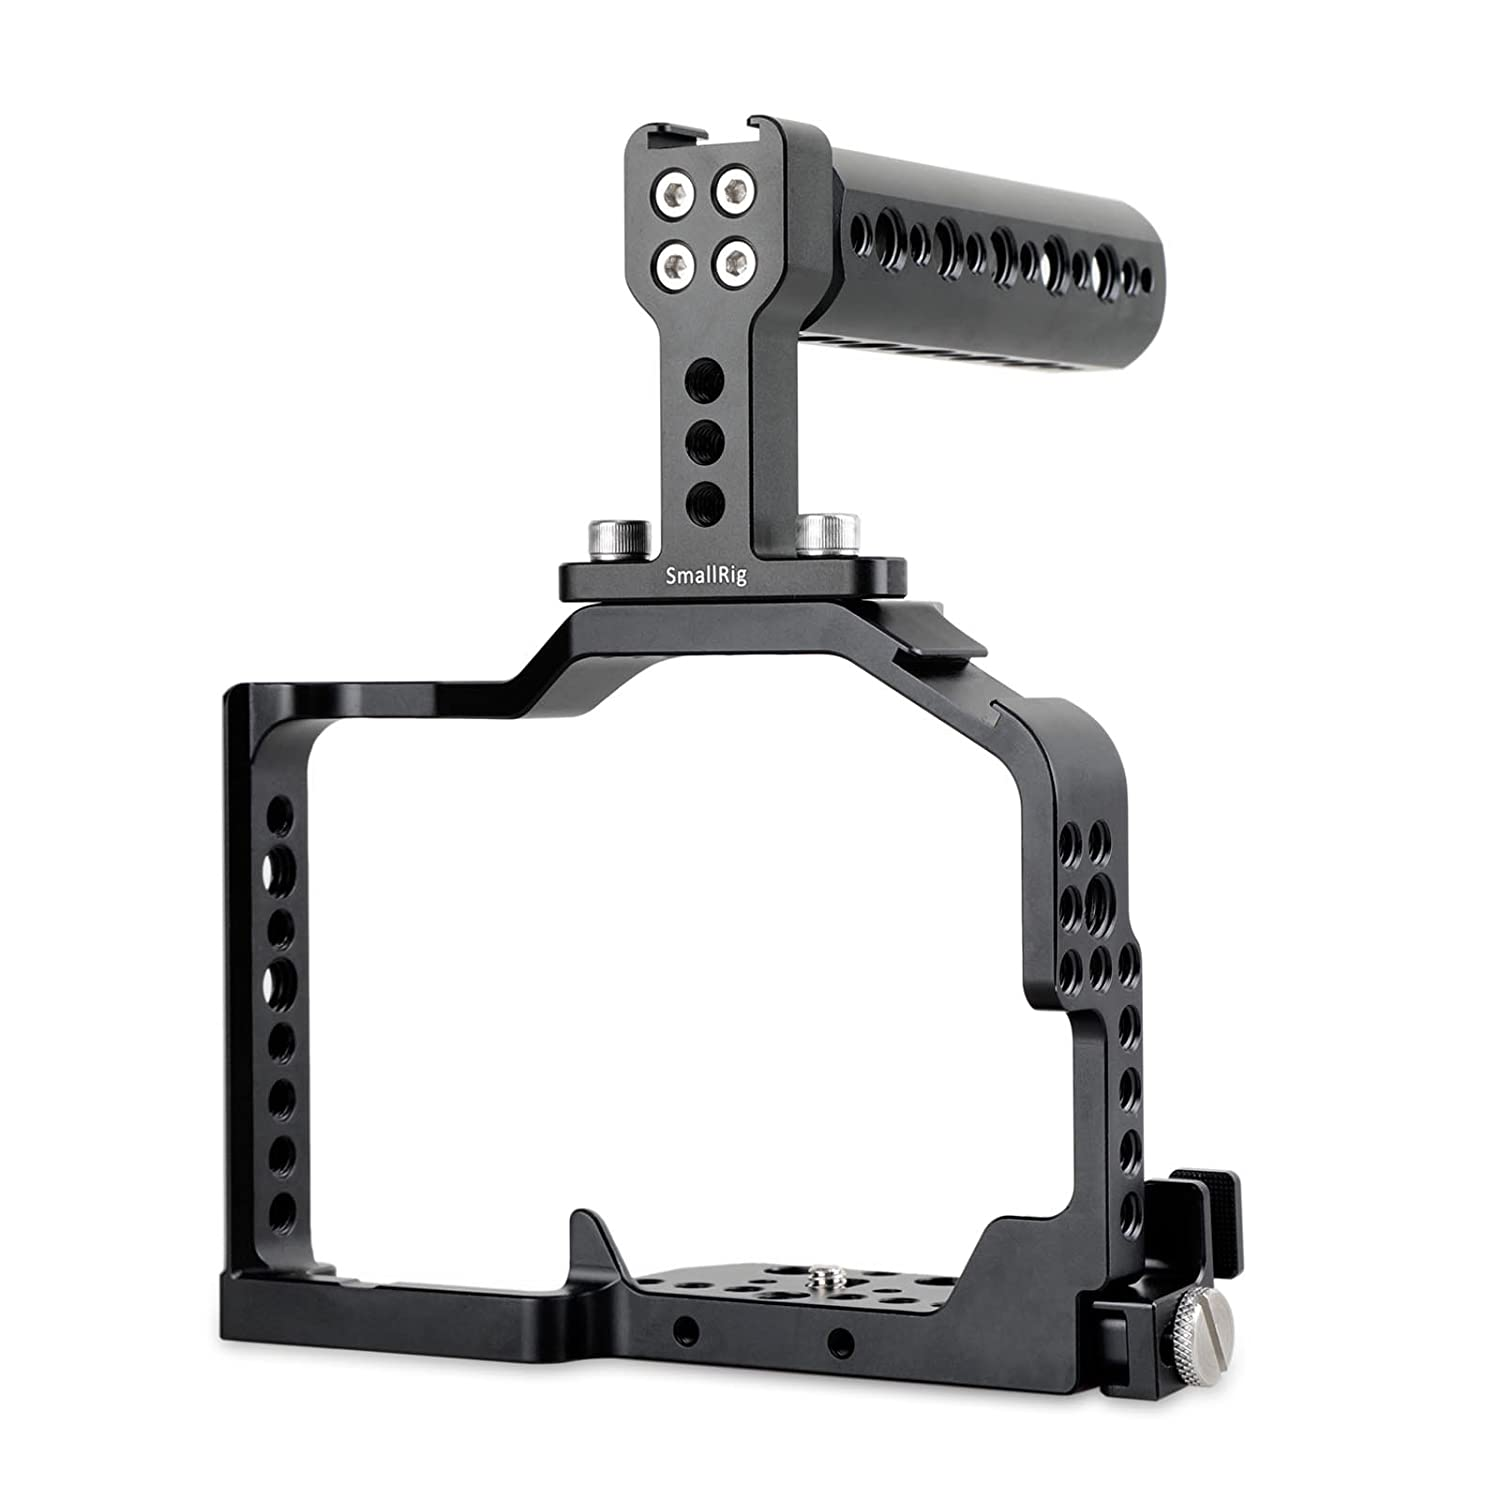 SMALLRIG Top Handle Grip with Locating Point for Arri, Adjustable Camera Handle with Mounting Points, Shoe Mount for Video Camera Cages, LED Lights Microphones- 1984